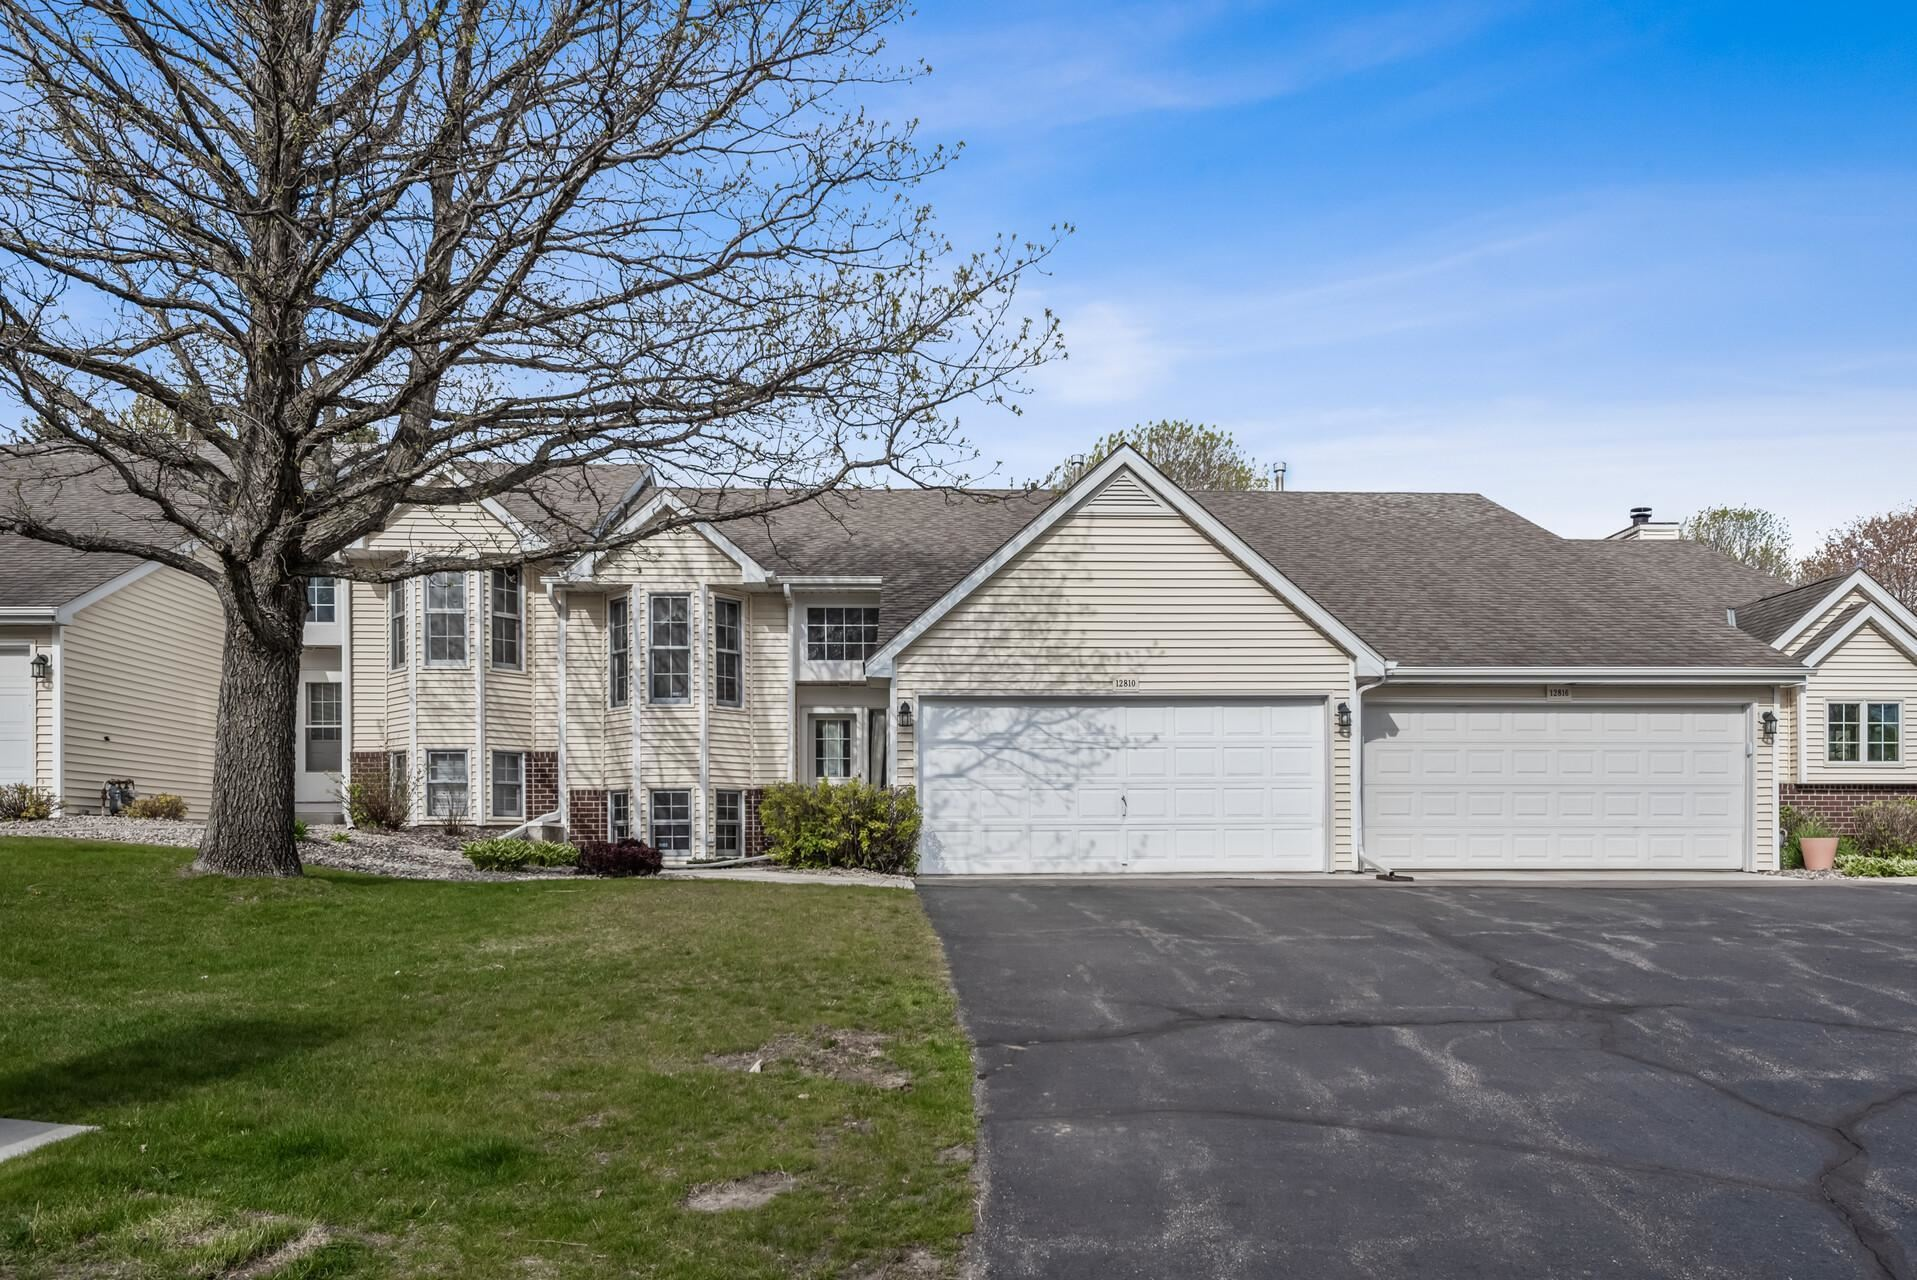 Photo of 12810 Eastview Curve, Apple Valley, MN 55124 (MLS # 5757172)